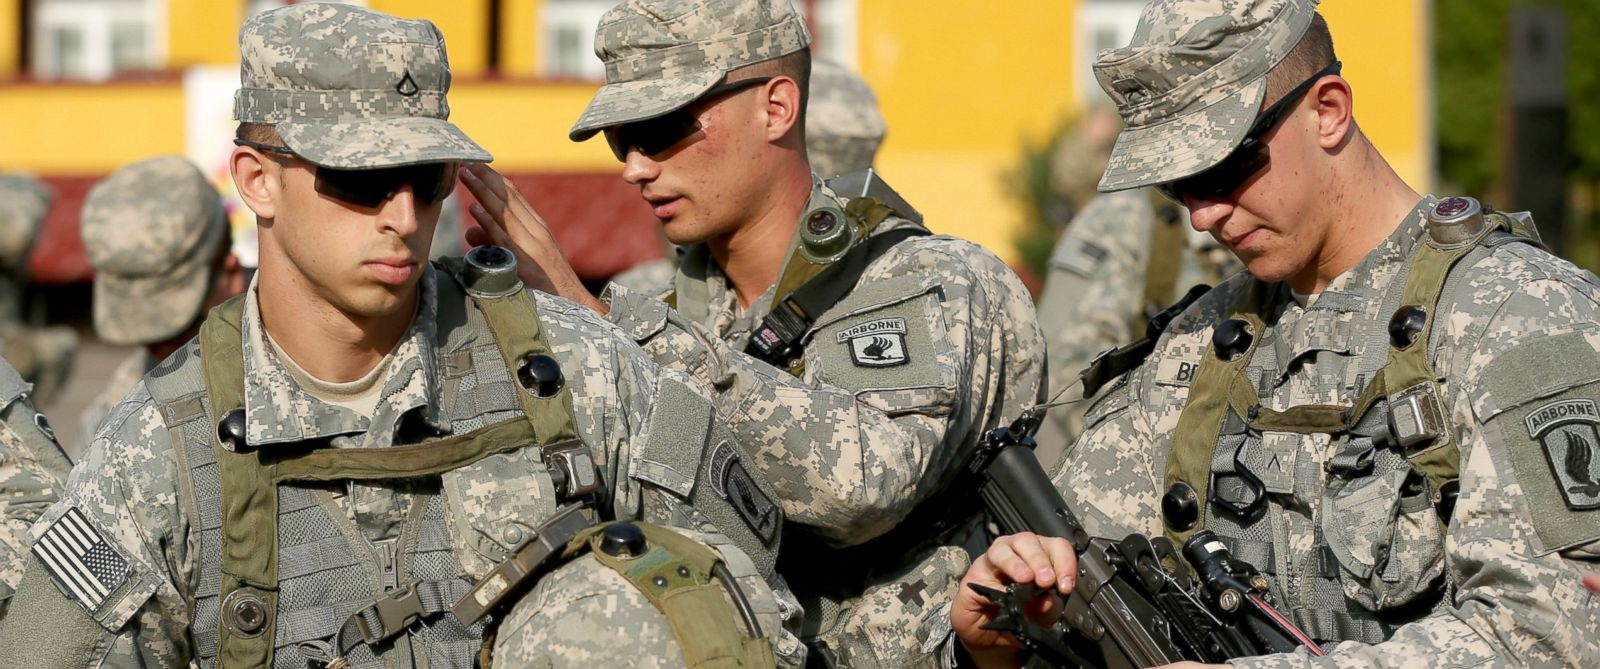 "PHOTO: Members of the U.S. Army 173rd Airborne Brigade prepare weapons and equipment following the opening ceremony of the ""Rapid Trident"" NATO military exercises, Sept. 15, 2014, in this file photo."